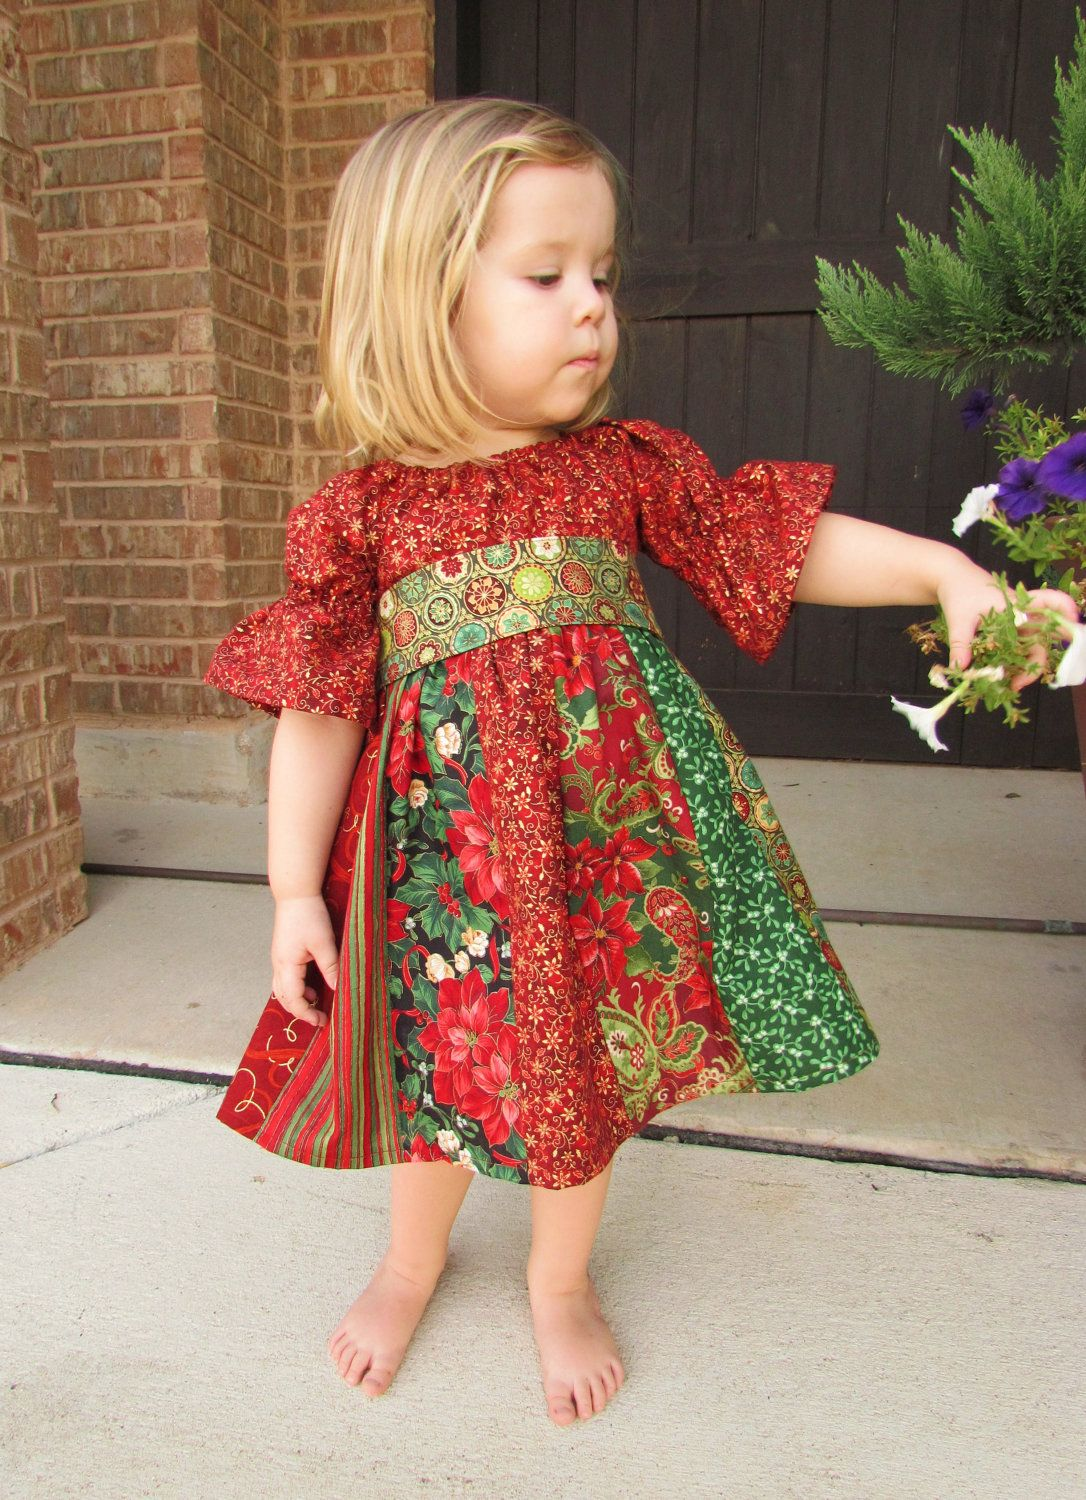 Blue christmas dress 4t - Child S Stripwork Peasant Dress For Christmas Girls Christmas Dress In Sizes 6 Months 12 Month 2t 3t 4t 5 6 7 And 8